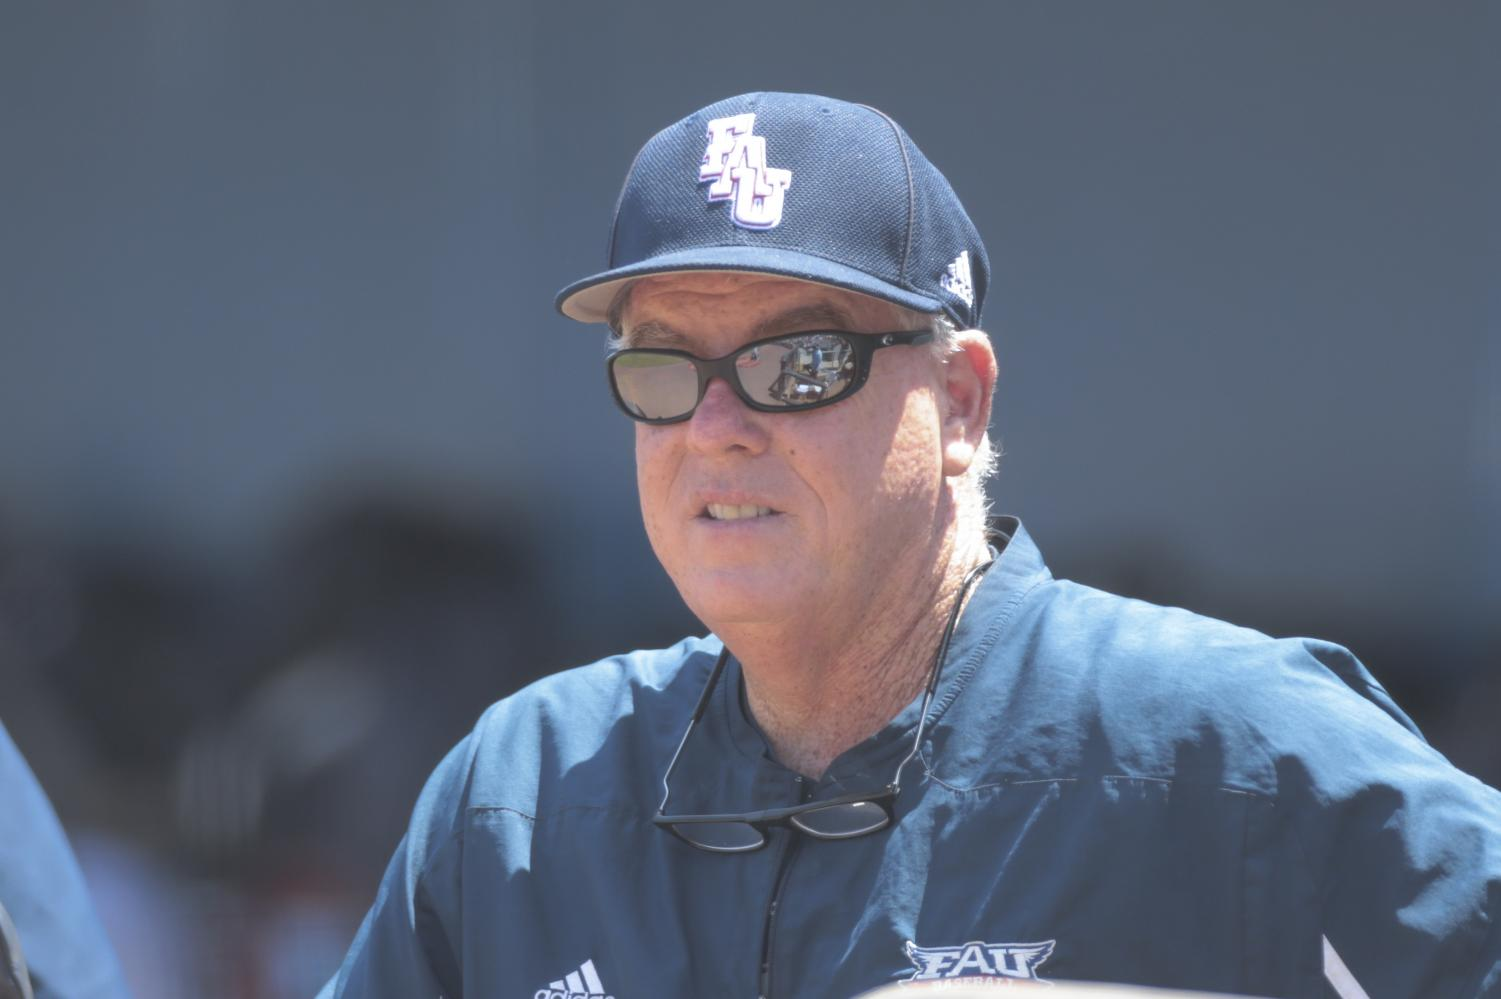 Coach John McCormack led FAU to a 40-win season, but couldn't finish it off with a Conference USA championship. Jordan Foreman/Conference USA.